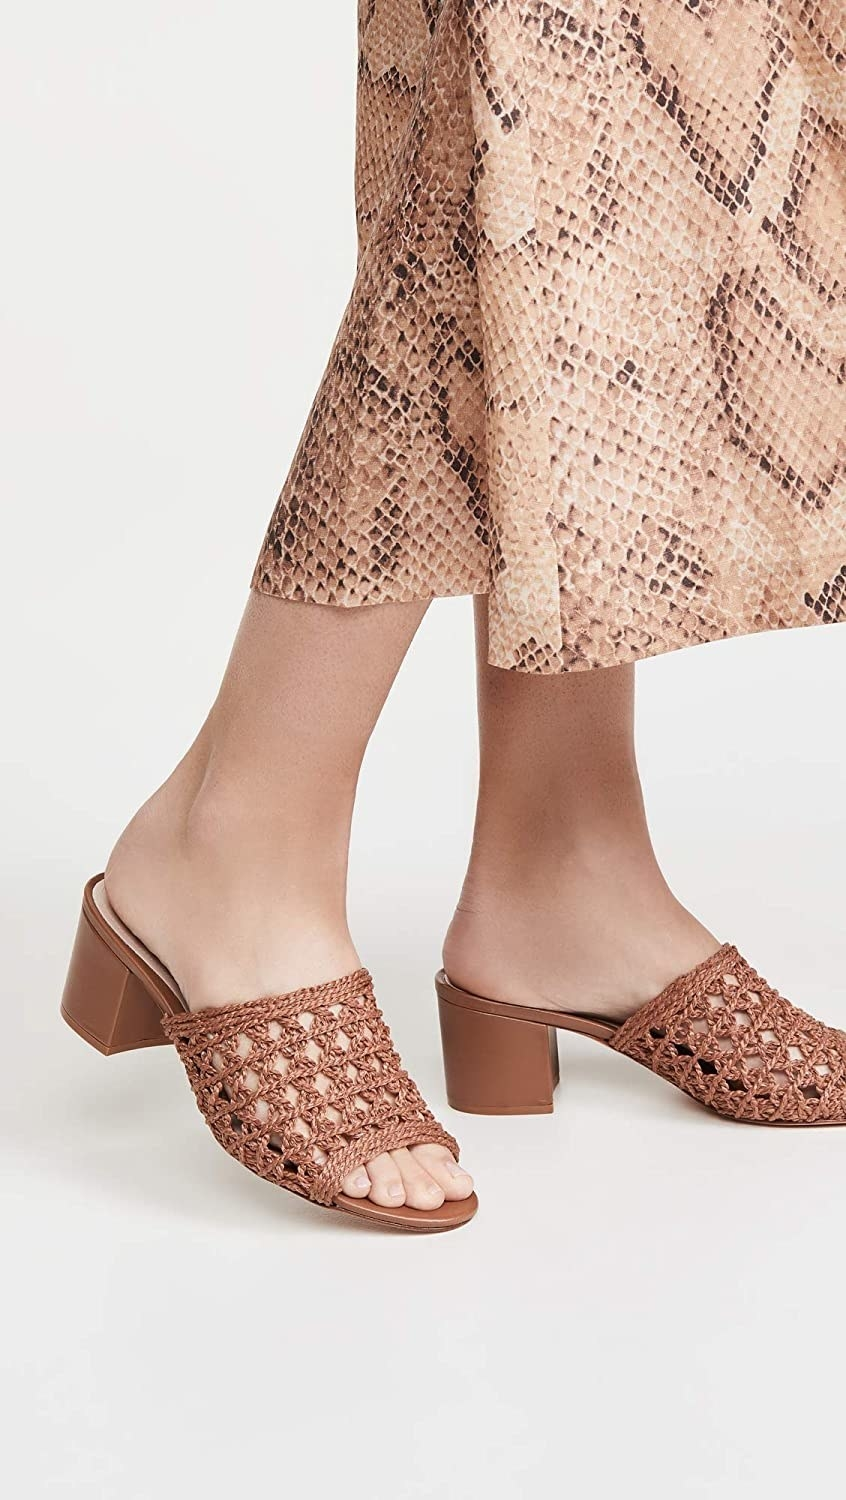 Model wearing the shoes in brown with a block 2.25-inch heel and macrame upper